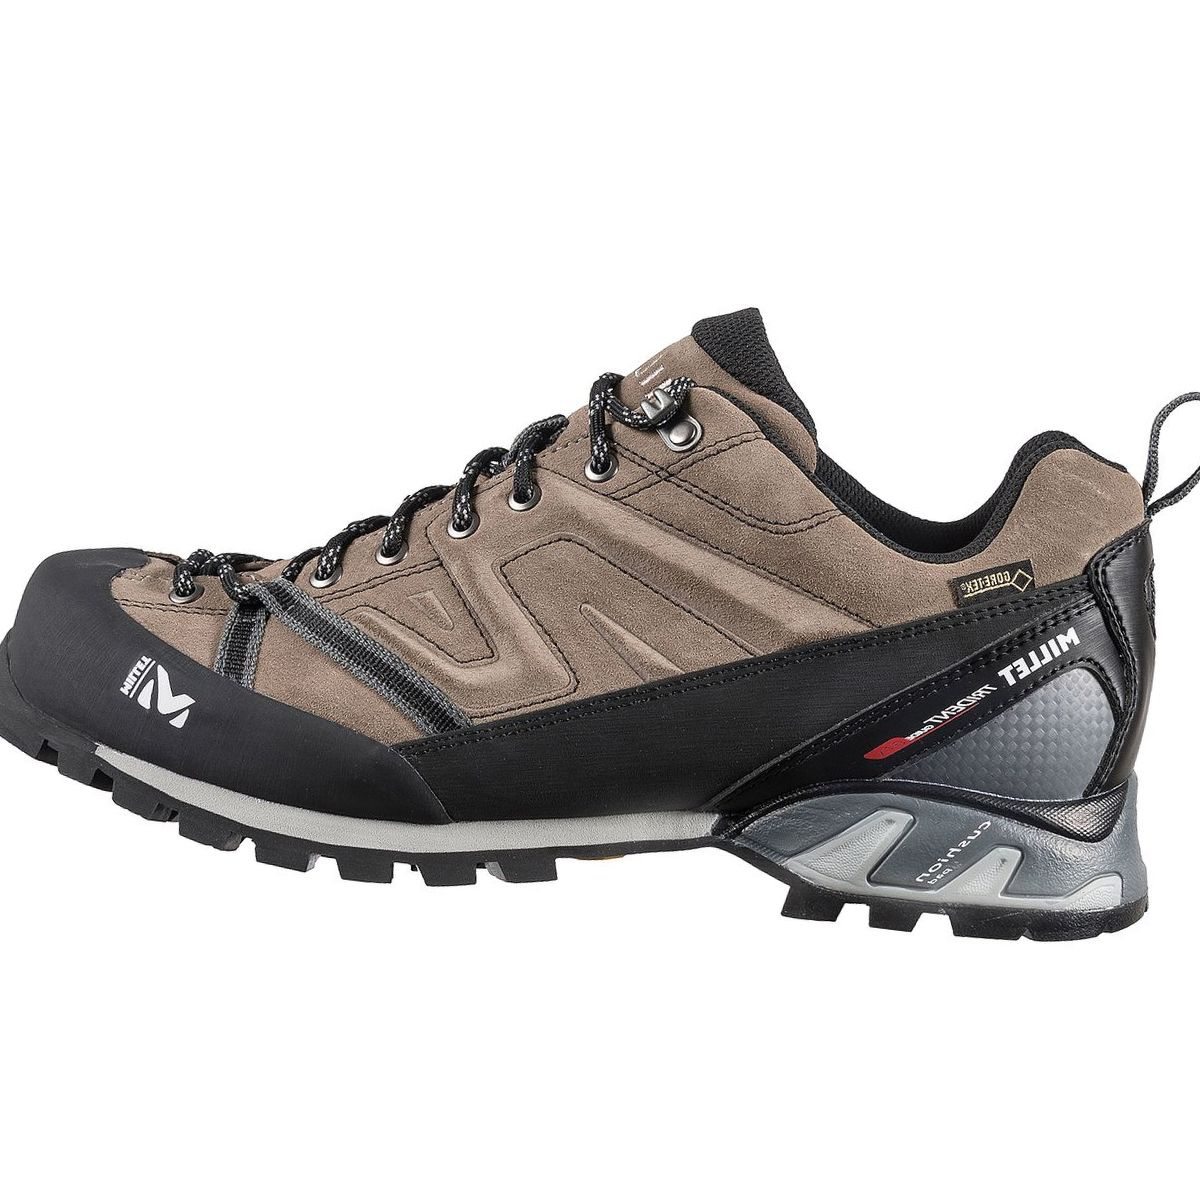 Millet Trident Guide GTX Approach Shoe - Men's